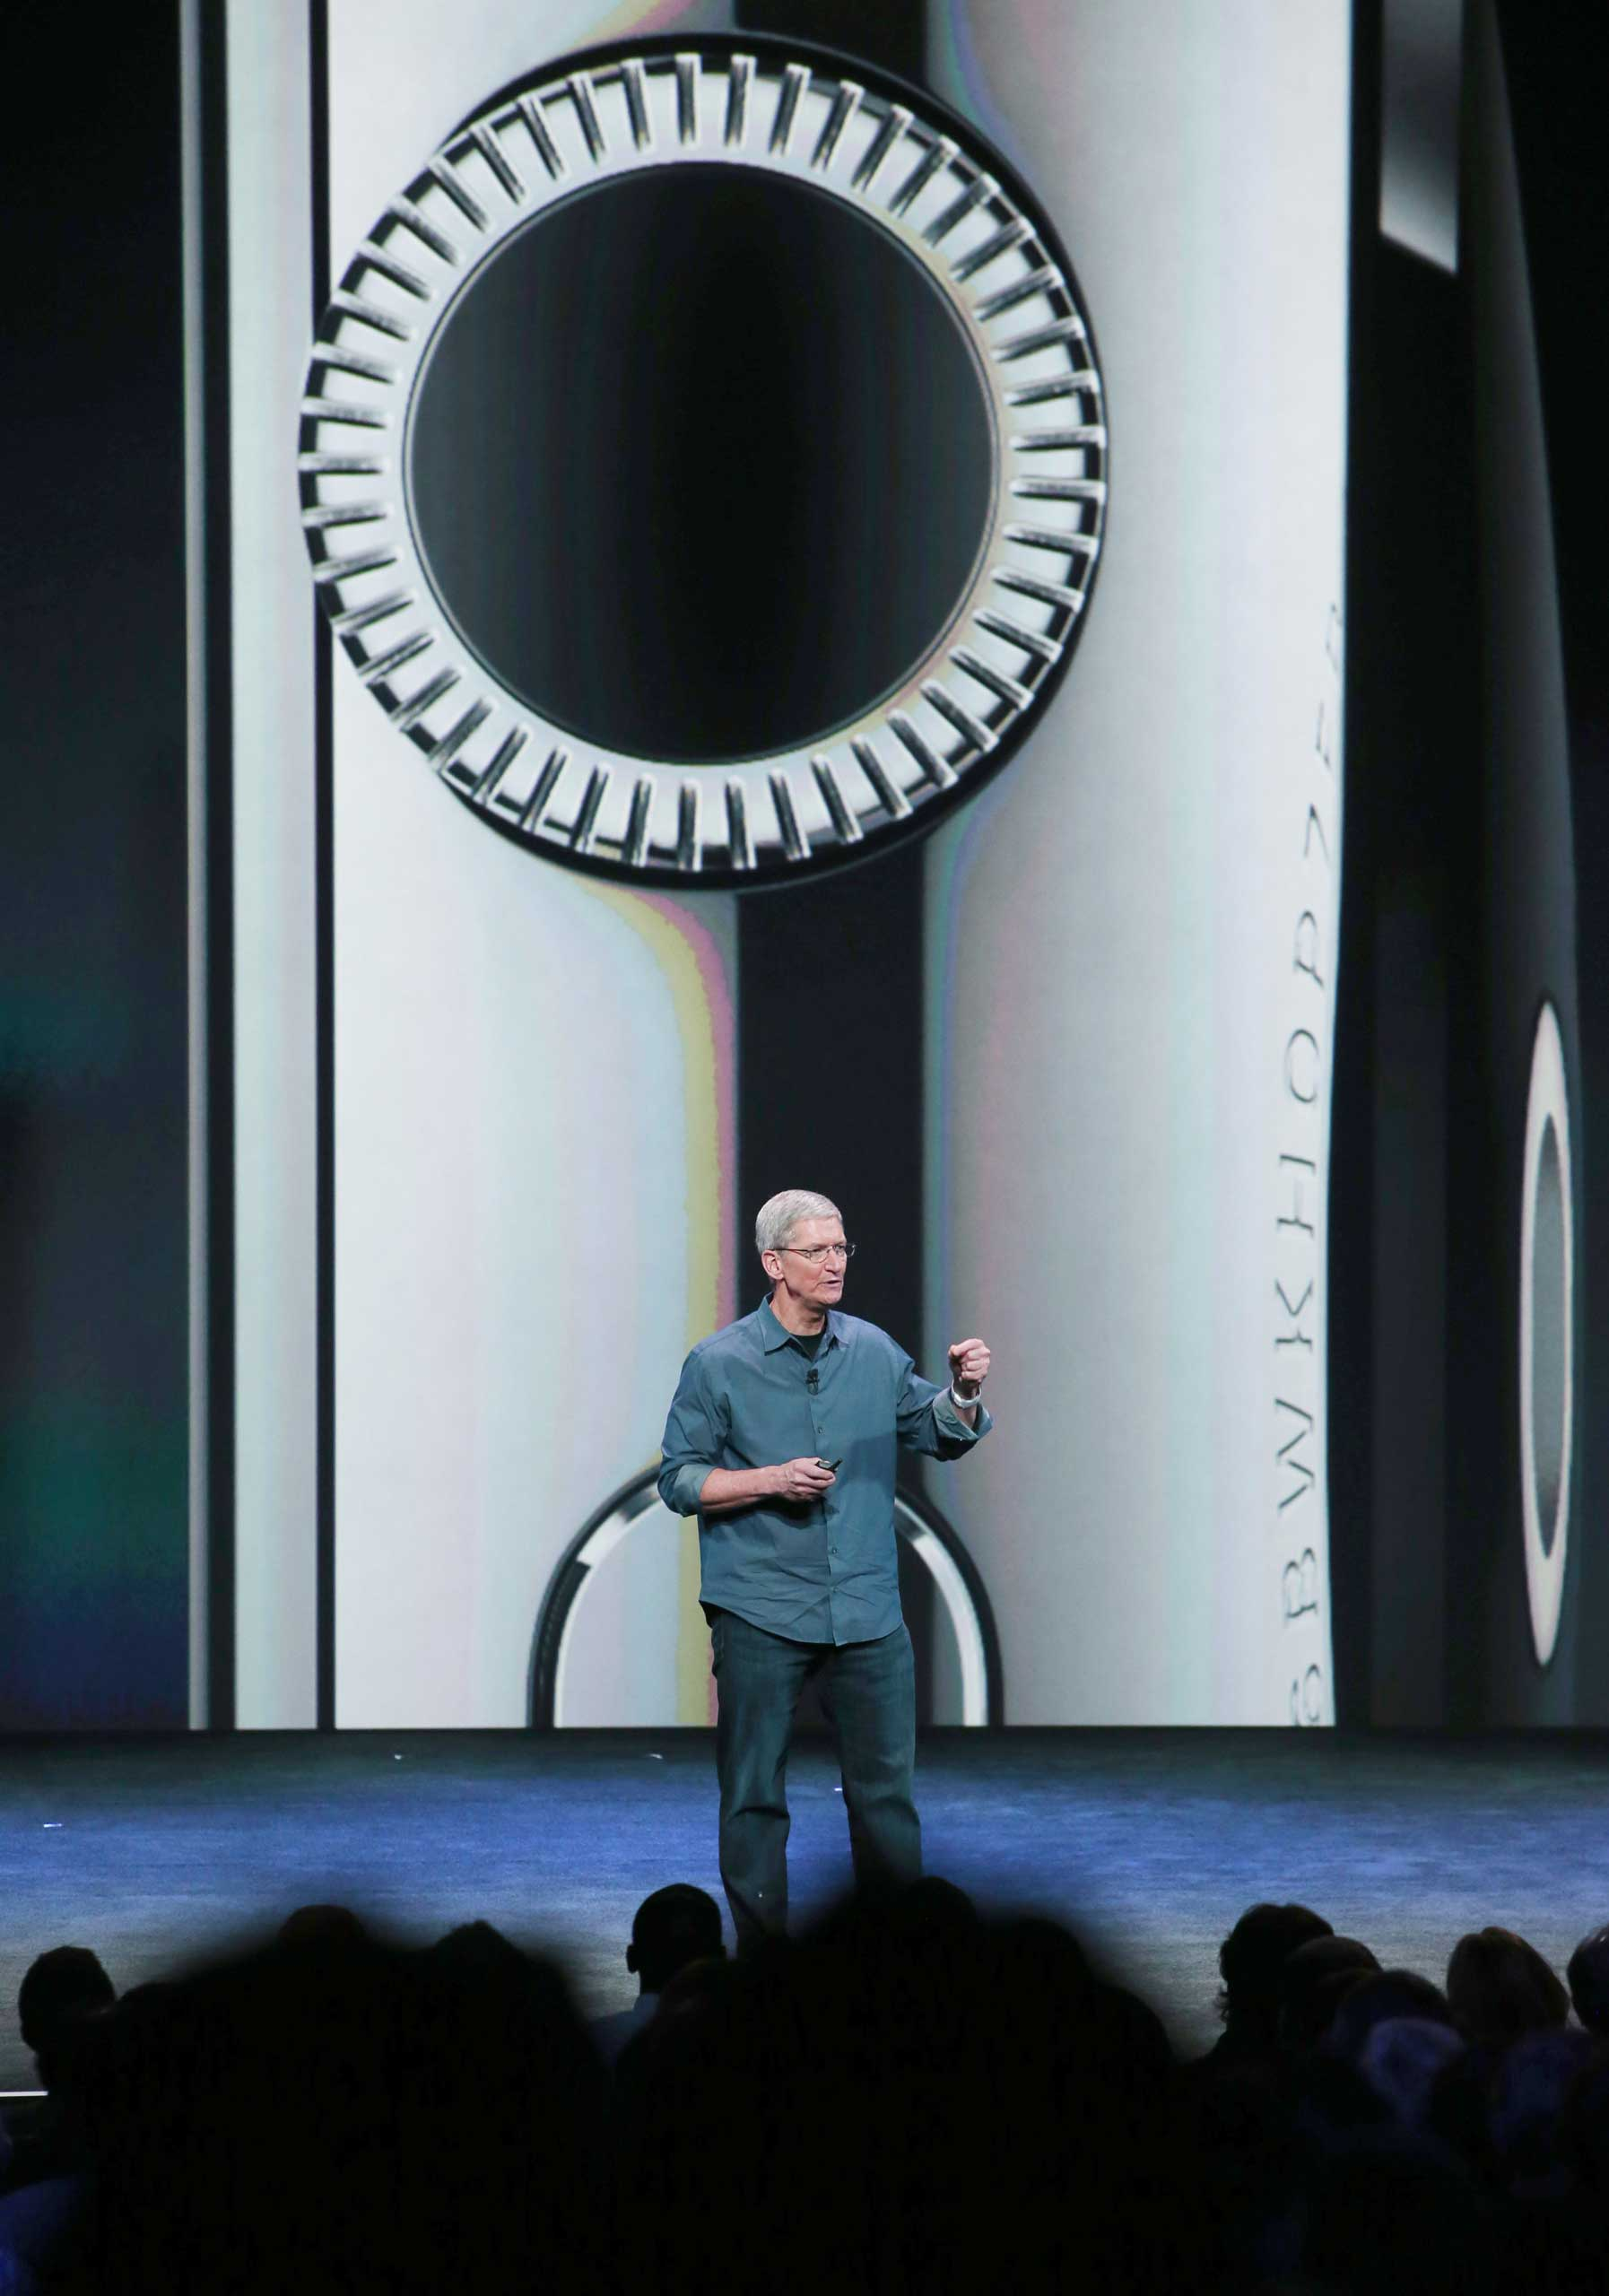 Apple CEO Tim Cook talks about the Apple Watch during an Apple special event at the Flint Center for the Performing Arts in Cupertino, Calif., on September 9, 2014.